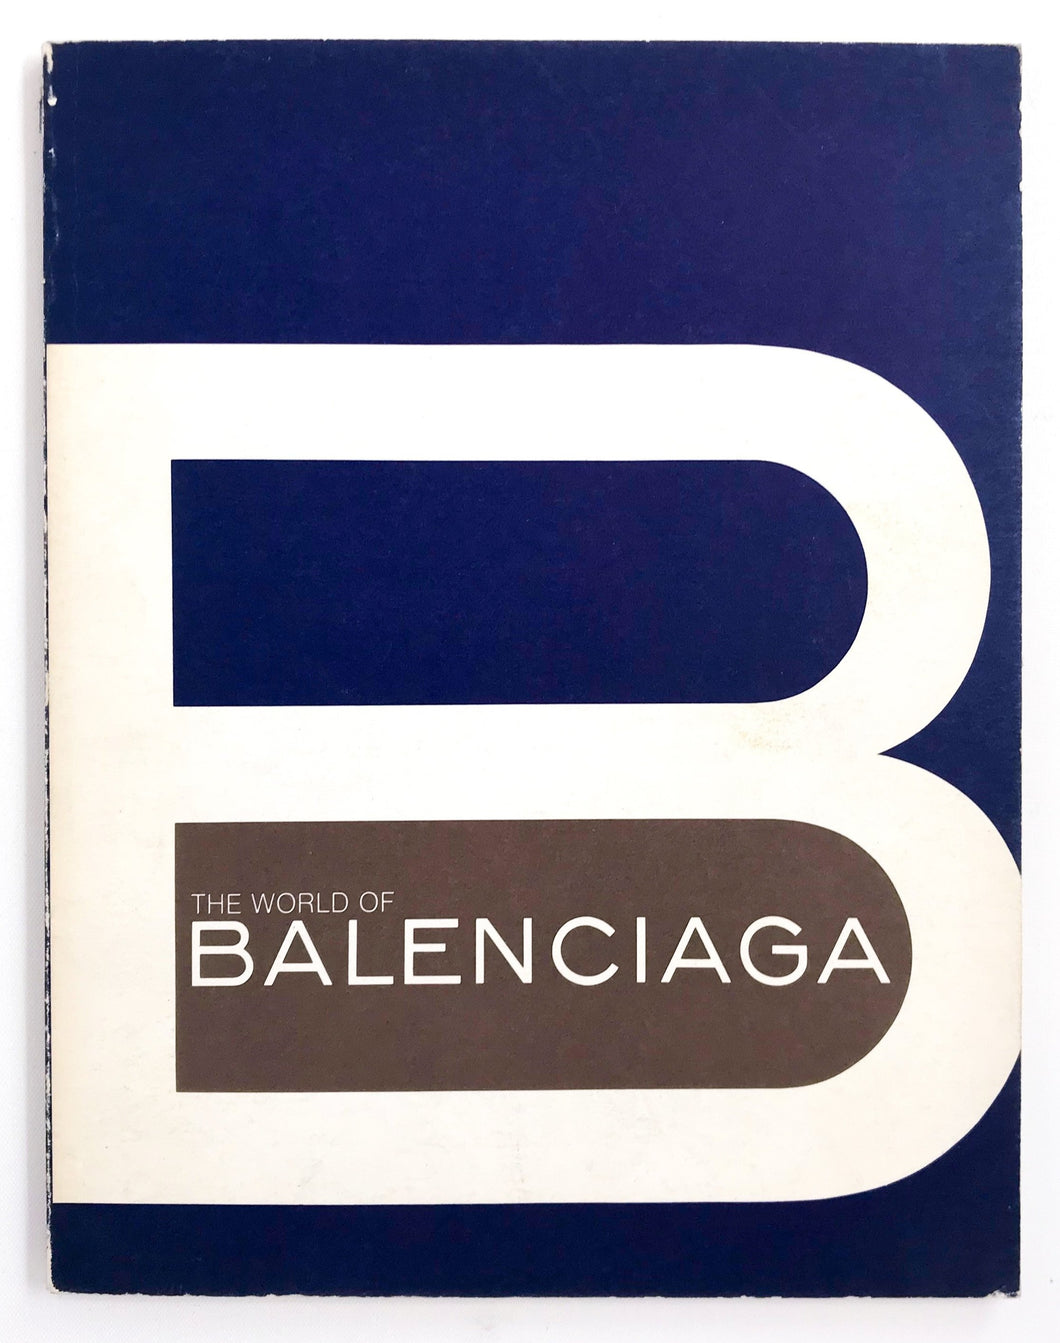 The world of Balenciaga